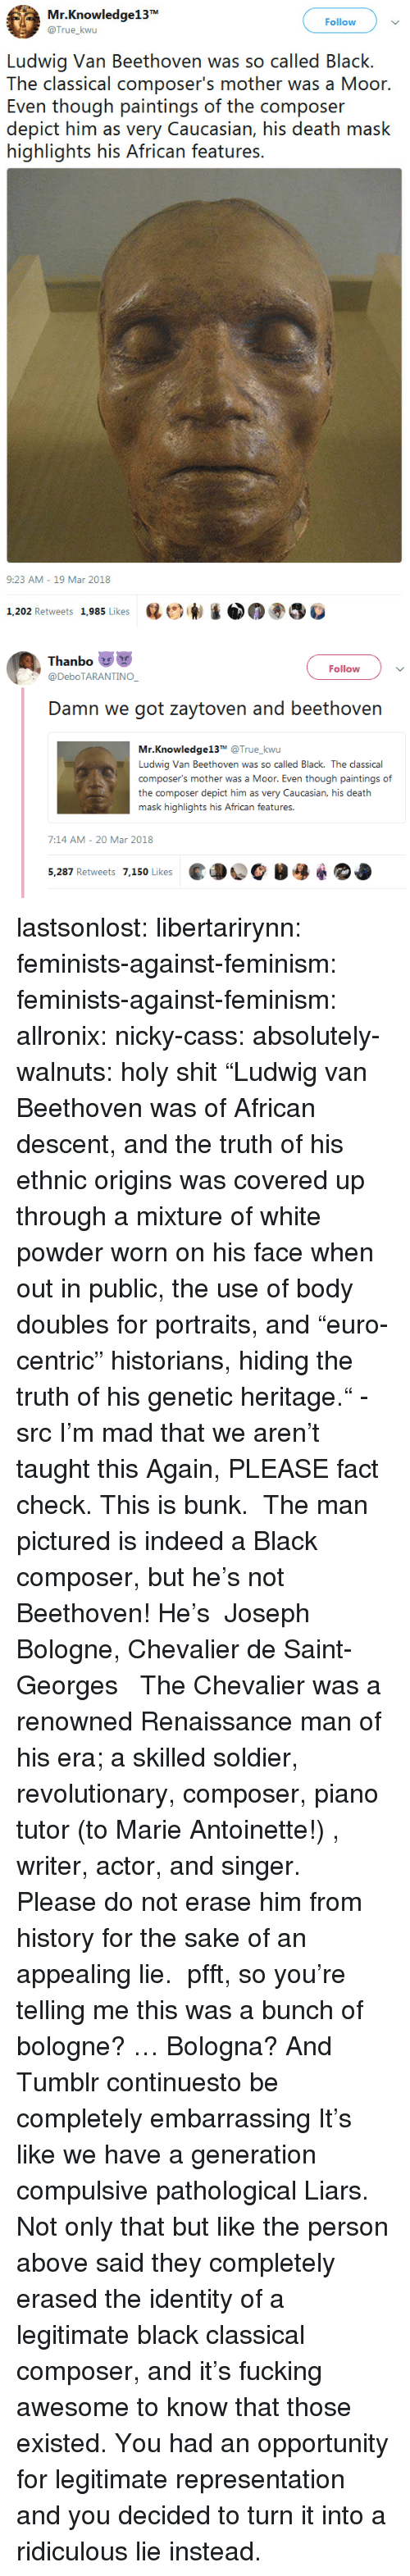 "Fact Check: Mr.Knowledge13  @True_kwu  Follow  Ludwig Van Beethoven was so called Black.  The classical composer's mother was a Moor  Even though paintings of the composer  depict him as very Caucasian, his death mask  highlights his African features.  9:23 AM-19 Mar 2018  1,202 Retweets 1,985 Likes  砝ビ)  ③巻   Thanbo  @DeboTARANTINO  Follow  Damn we got zaytoven and beethovern  Mr.Knowledge13T @True_kwu  Ludwig Van Beethoven was so called Black. The classical  composer's mother was a Moor. Even though paintings of  the composer depict him as very Caucasian, his death  .む  7:14 AM- 20 Mar 2018  ed OC  5,287 Retweets 7,150 Likes lastsonlost:  libertarirynn:  feminists-against-feminism:  feminists-against-feminism: allronix:  nicky-cass:  absolutely-walnuts:  holy shit ""Ludwig van Beethoven was of African descent, and the truth of his ethnic origins was covered up through a mixture of white powder worn on his face when out in public, the use of body doubles for portraits, and ""euro-centric"" historians, hiding the truth of his genetic heritage."" - src   I'm mad that we aren't taught this  Again, PLEASE fact check. This is bunk.  The man pictured is indeed a Black composer, but he's not Beethoven! He's   Joseph Bologne, Chevalier de Saint-Georges    The Chevalier was a renowned Renaissance man of his era; a skilled soldier, revolutionary, composer, piano tutor (to Marie Antoinette!) , writer, actor, and singer.  Please do not erase him from history for the sake of an appealing lie.   pfft, so you're telling me this was a bunch of bologne?  … Bologna?  And Tumblr continuesto be completely embarrassing  It's like we have a generation compulsive pathological Liars.  Not only that but like the person above said they completely erased the identity of a legitimate black classical composer, and it's fucking awesome to know that those existed. You had an opportunity for legitimate representation and you decided to turn it into a ridiculous lie instead."